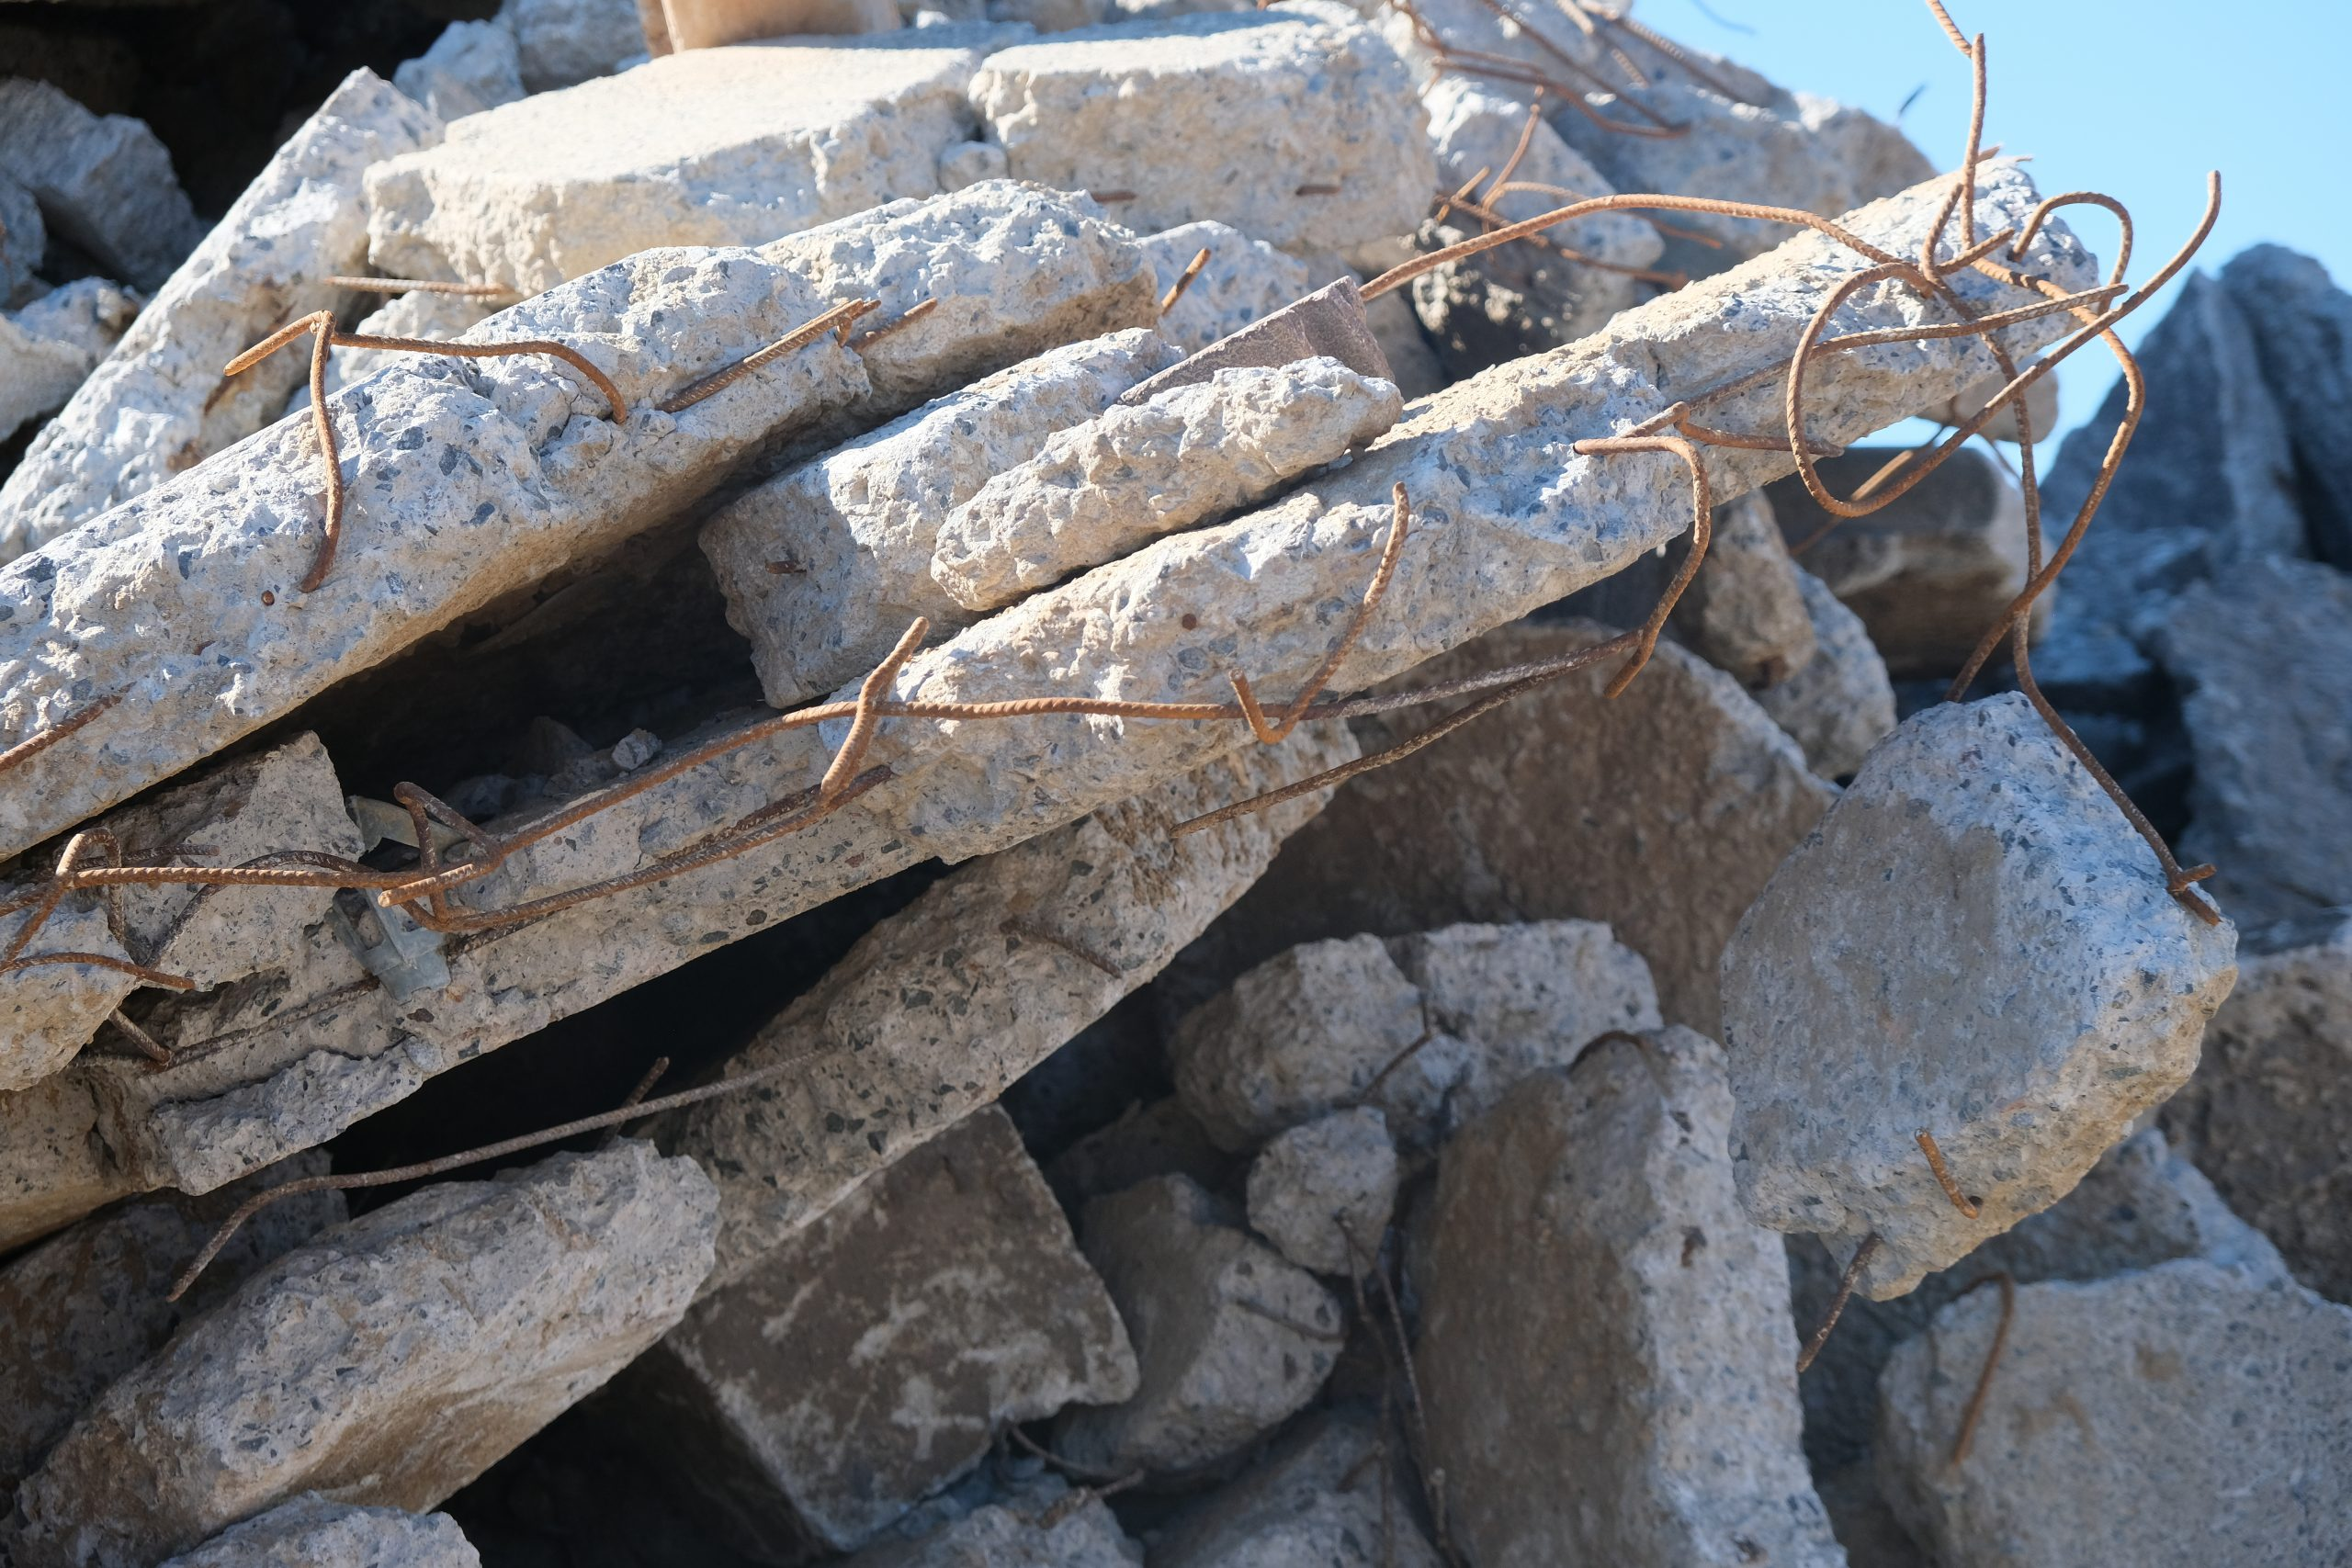 Pile of concrete waste with reinforcement steel